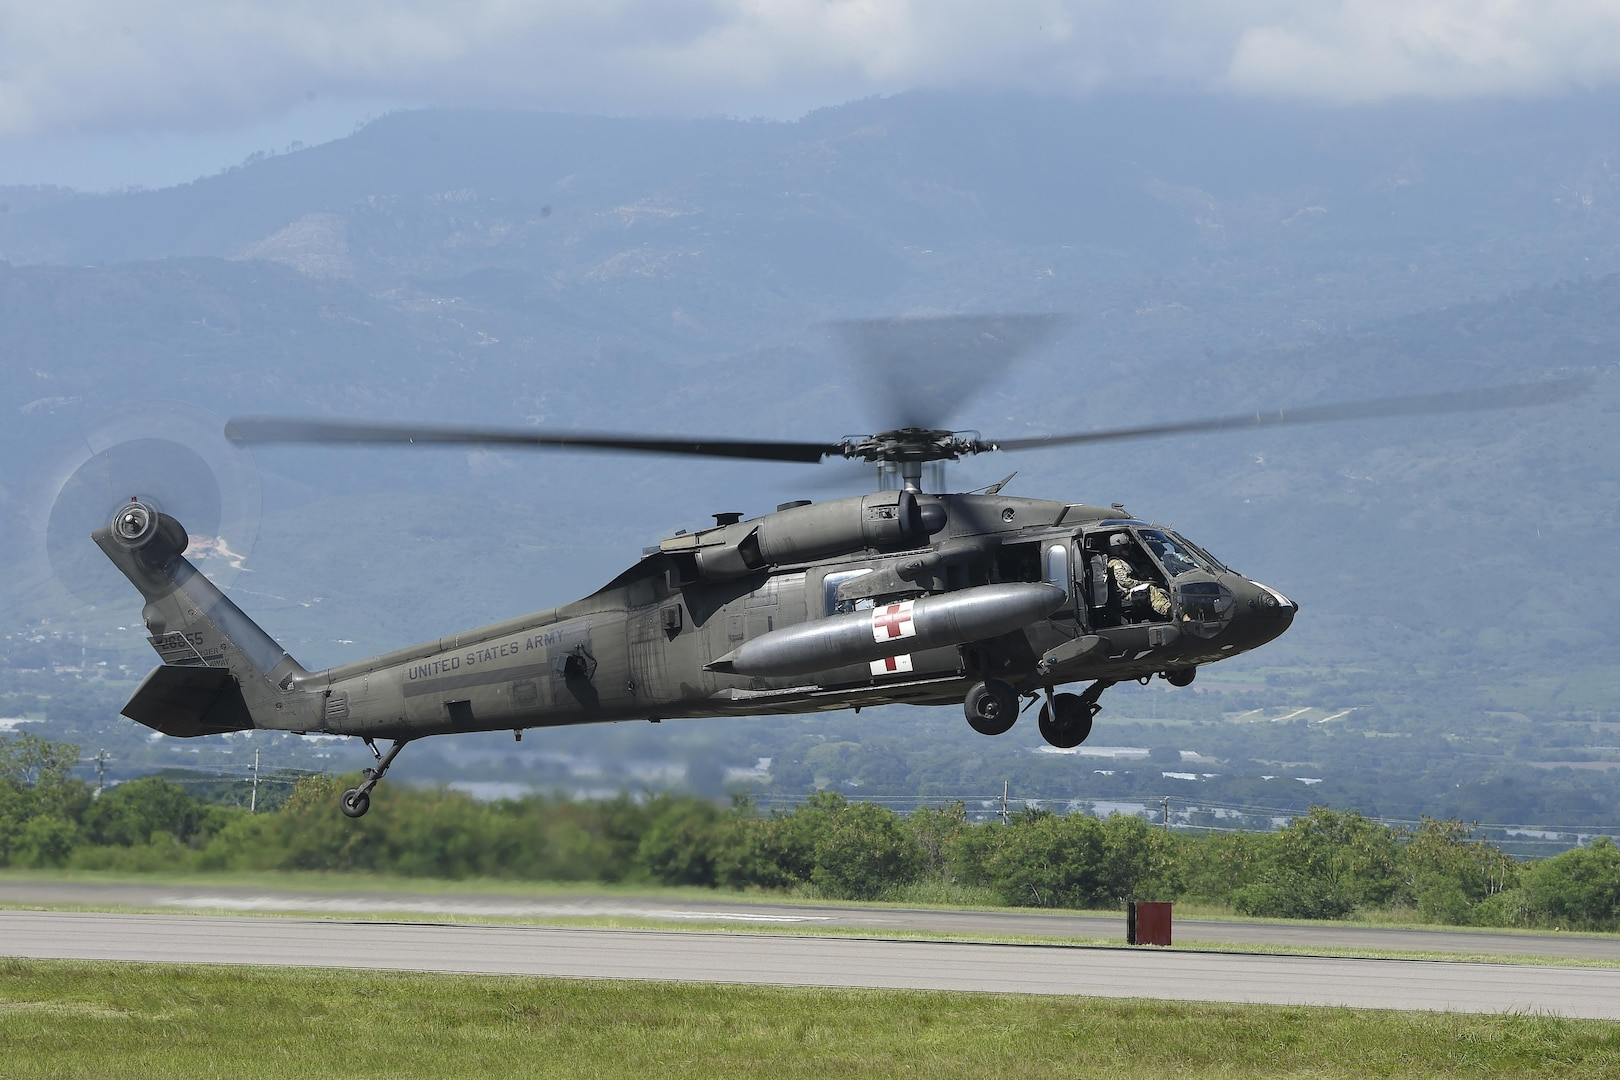 An HH-60L Black Hawk helicopter prepares to launch from Soto Cano Air Base, Honduras, Oct. 4, 2016, to stage at the Grand Cayman Islands to support Hurricane Matthew relief efforts if requested by the U.S. Agency for International Development's Office of Foreign Disaster Assistance. The Black Hawk is assigned to Joint Task Force-Bravo's 1st Battalion, 228th Aviation Regiment. Air Force photo by Staff Sgt. Siuta B. Ika